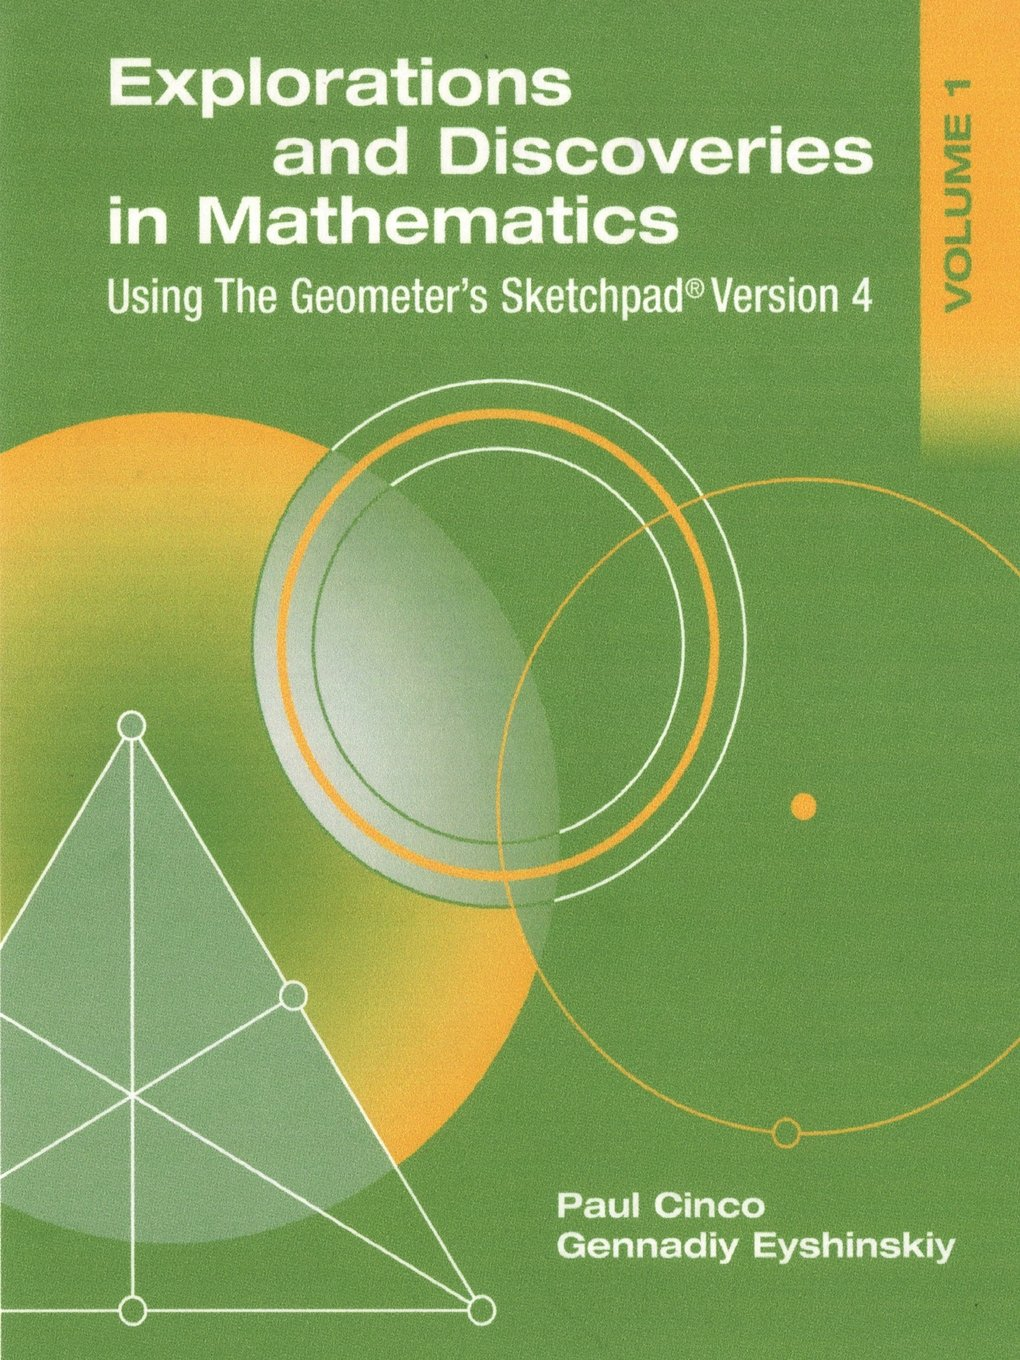 Explorations and Discoveries in Mathematics, Volume 1, Using the Geometer's Sketchpad Version 4 pdf epub